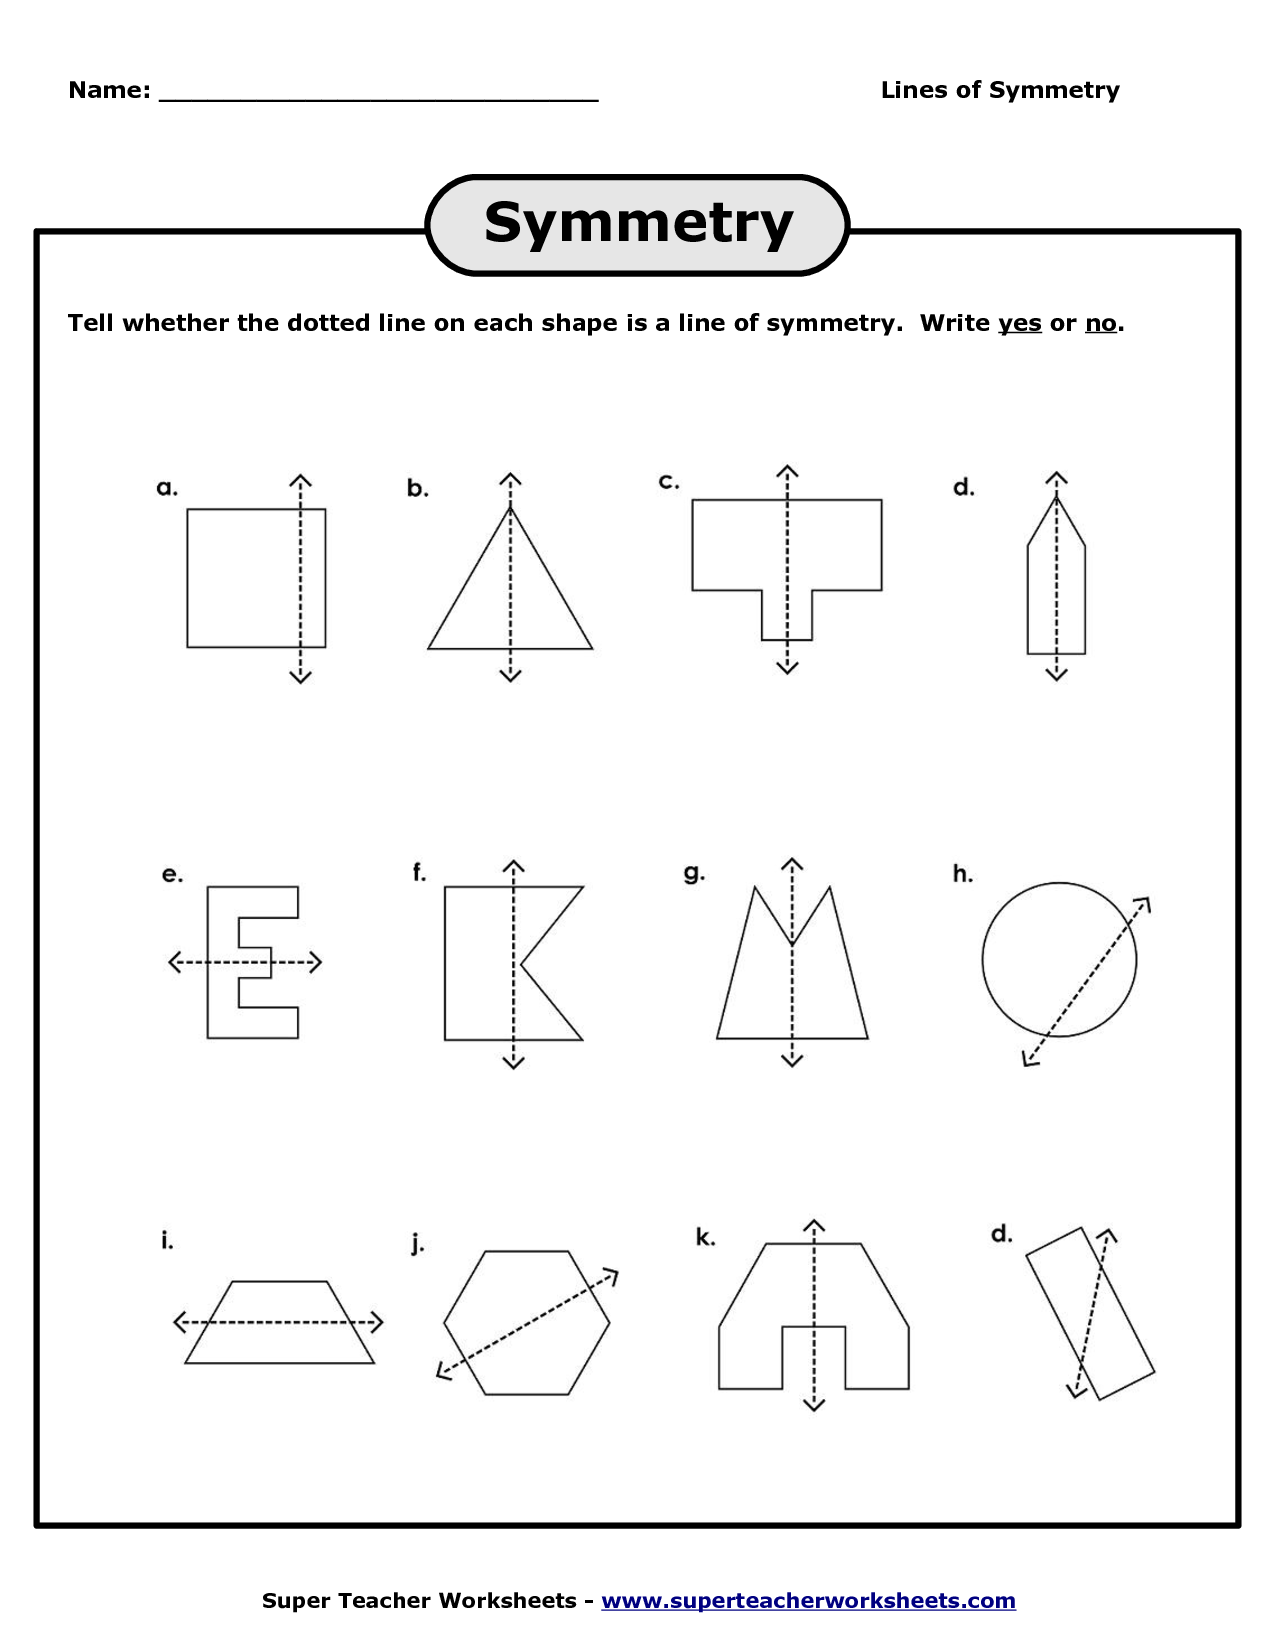 Worksheets Symmetry Worksheets lines of symmetry worksheets worksheet pdf worksheets